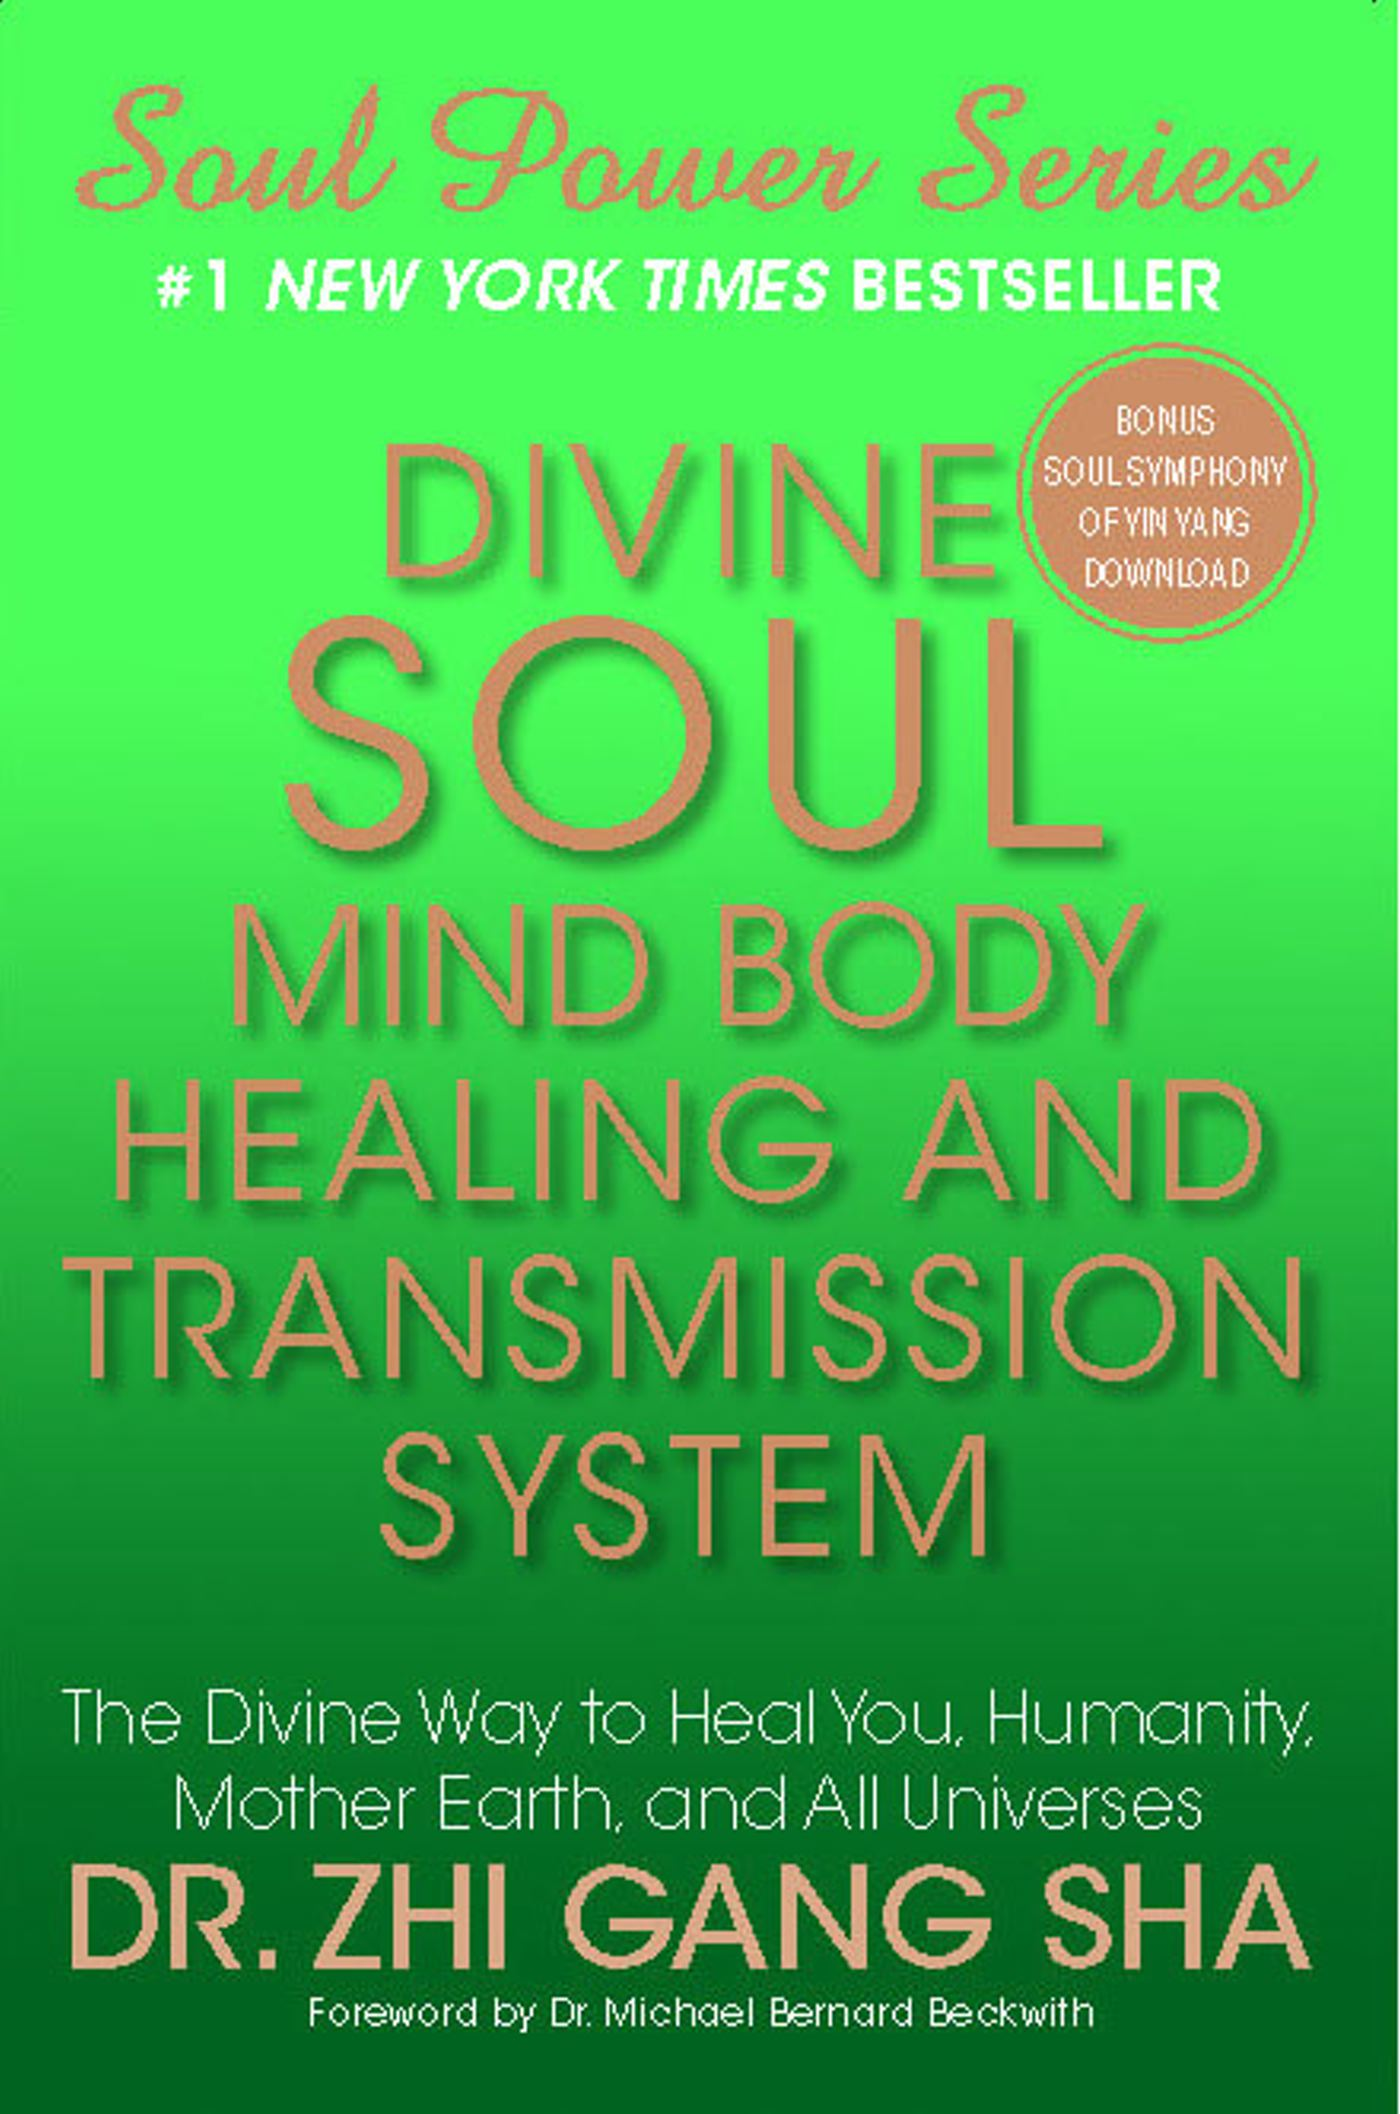 Divine soul mind body healing and transmission sys 9781439182512 hr